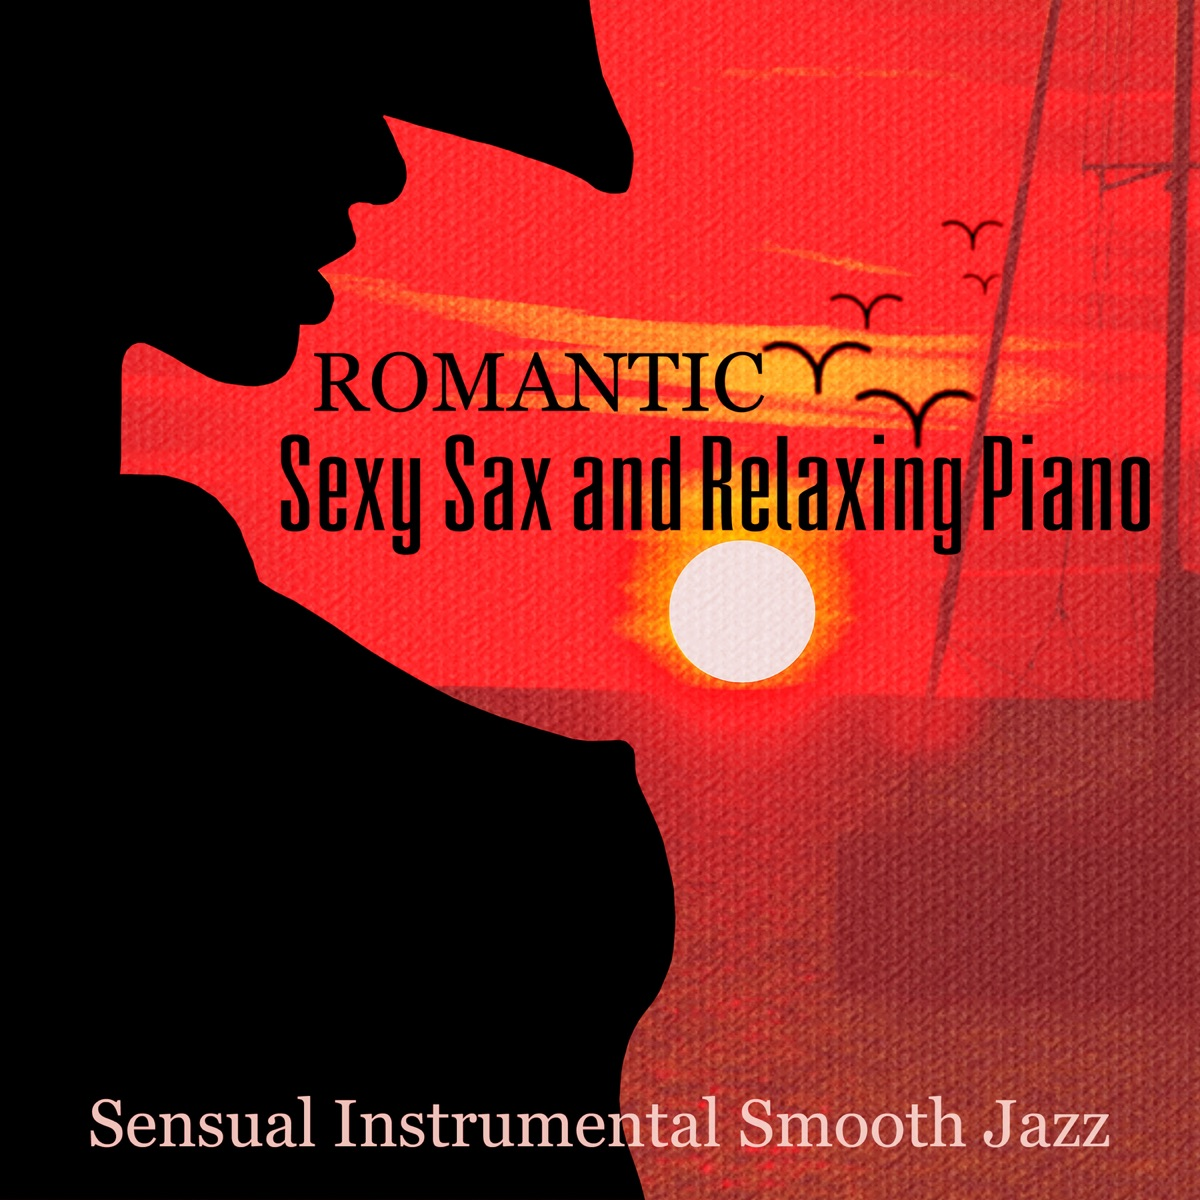 Romantic Sexy Sax and Relaxing Piano: Sensual Instrumental